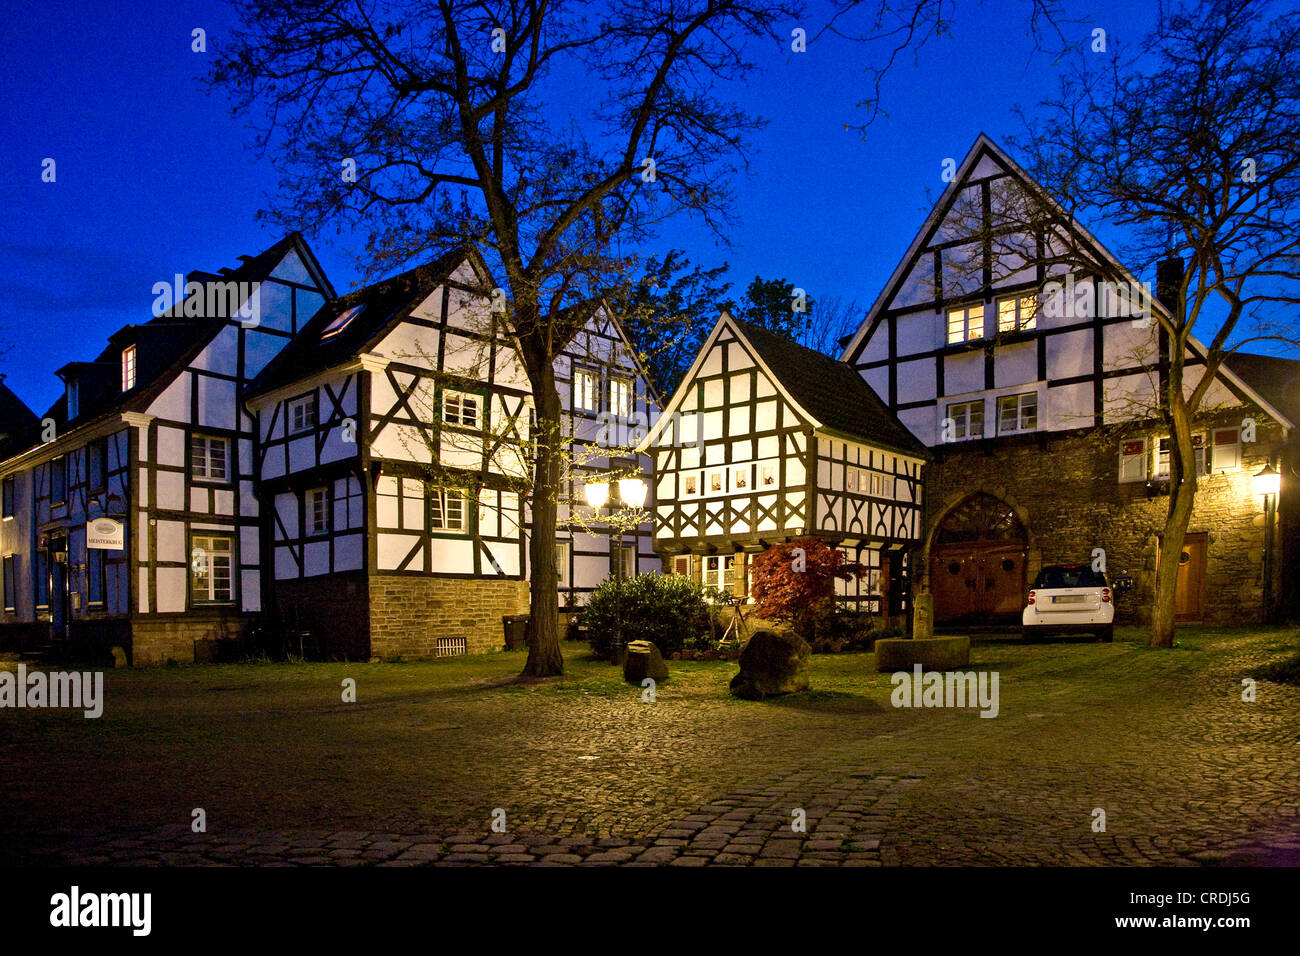 timbered houses of Fuenf Giebel Eck (five roofs coner), Germany, North Rhine-Westphalia, Ruhr Area, Wetter/Ruhr Stock Photo